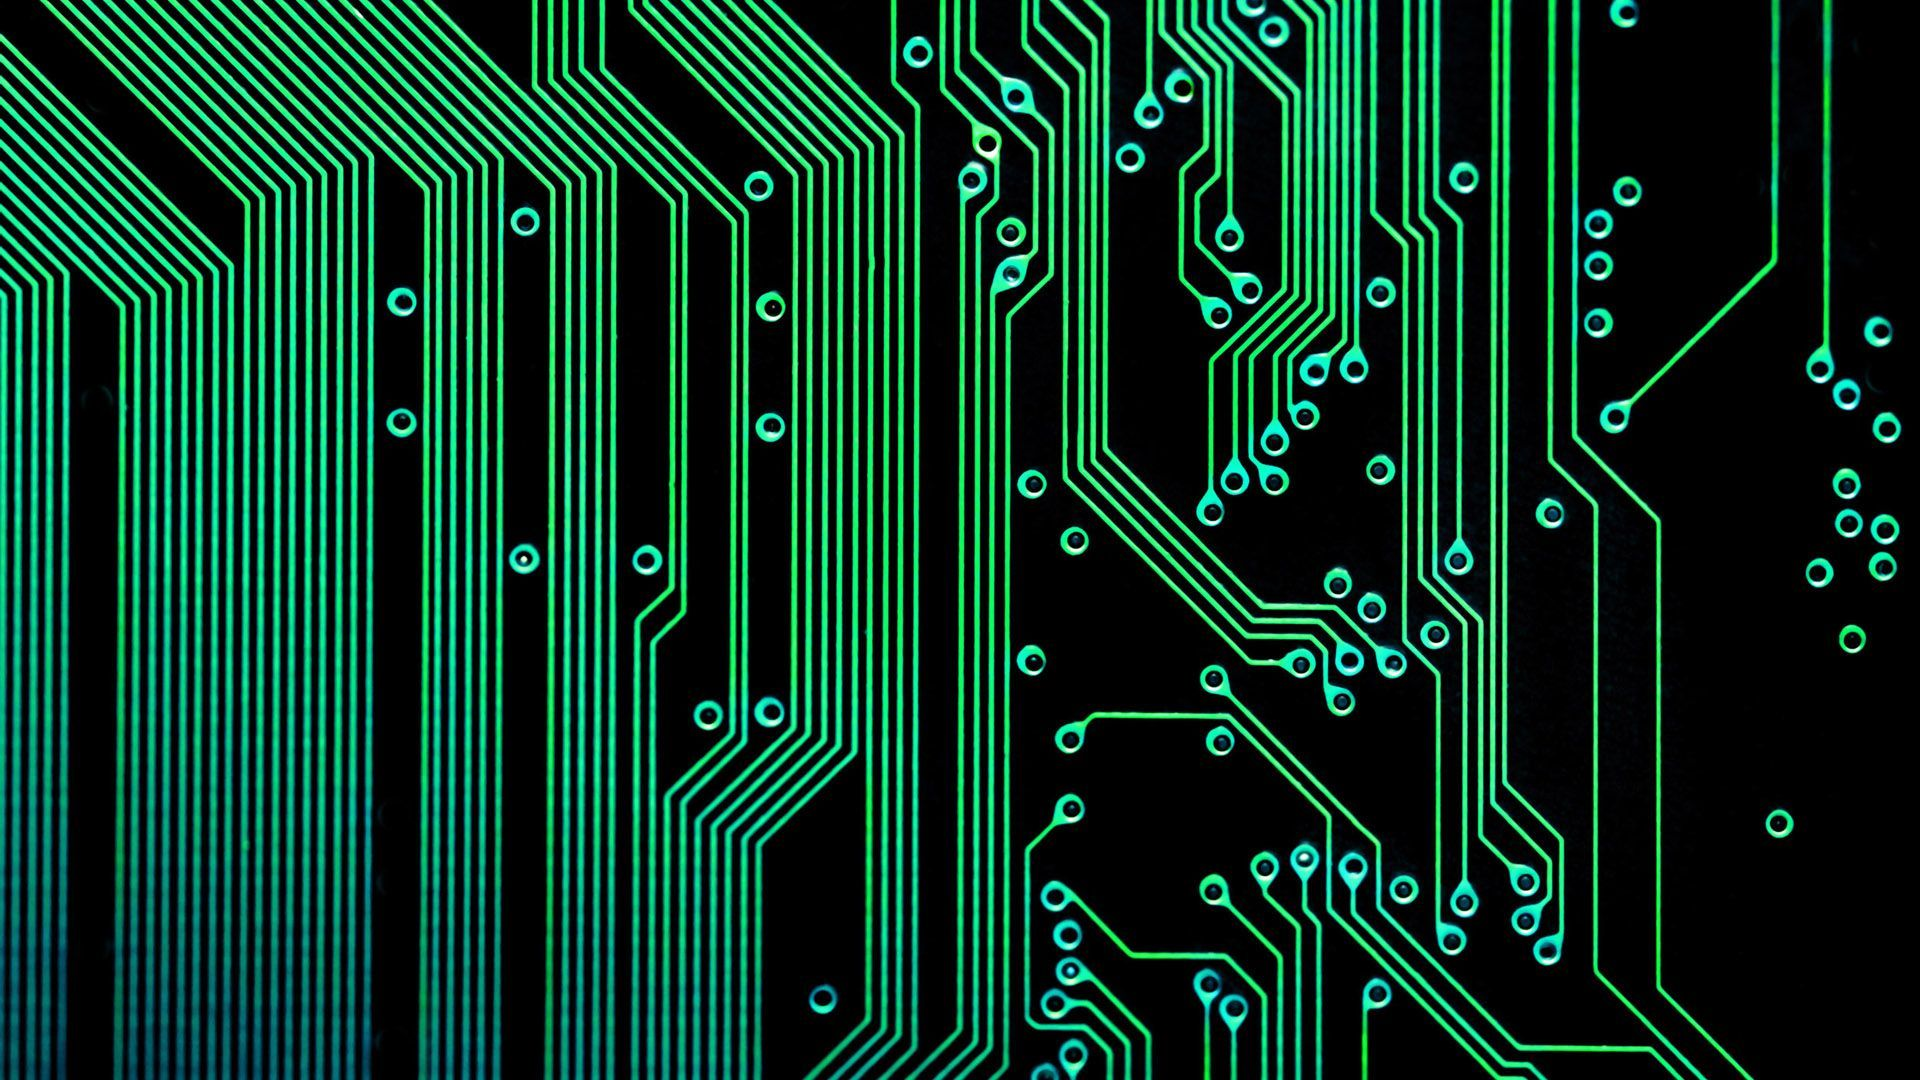 27 Cyber Chip Wallpapers On Wallpapersafari